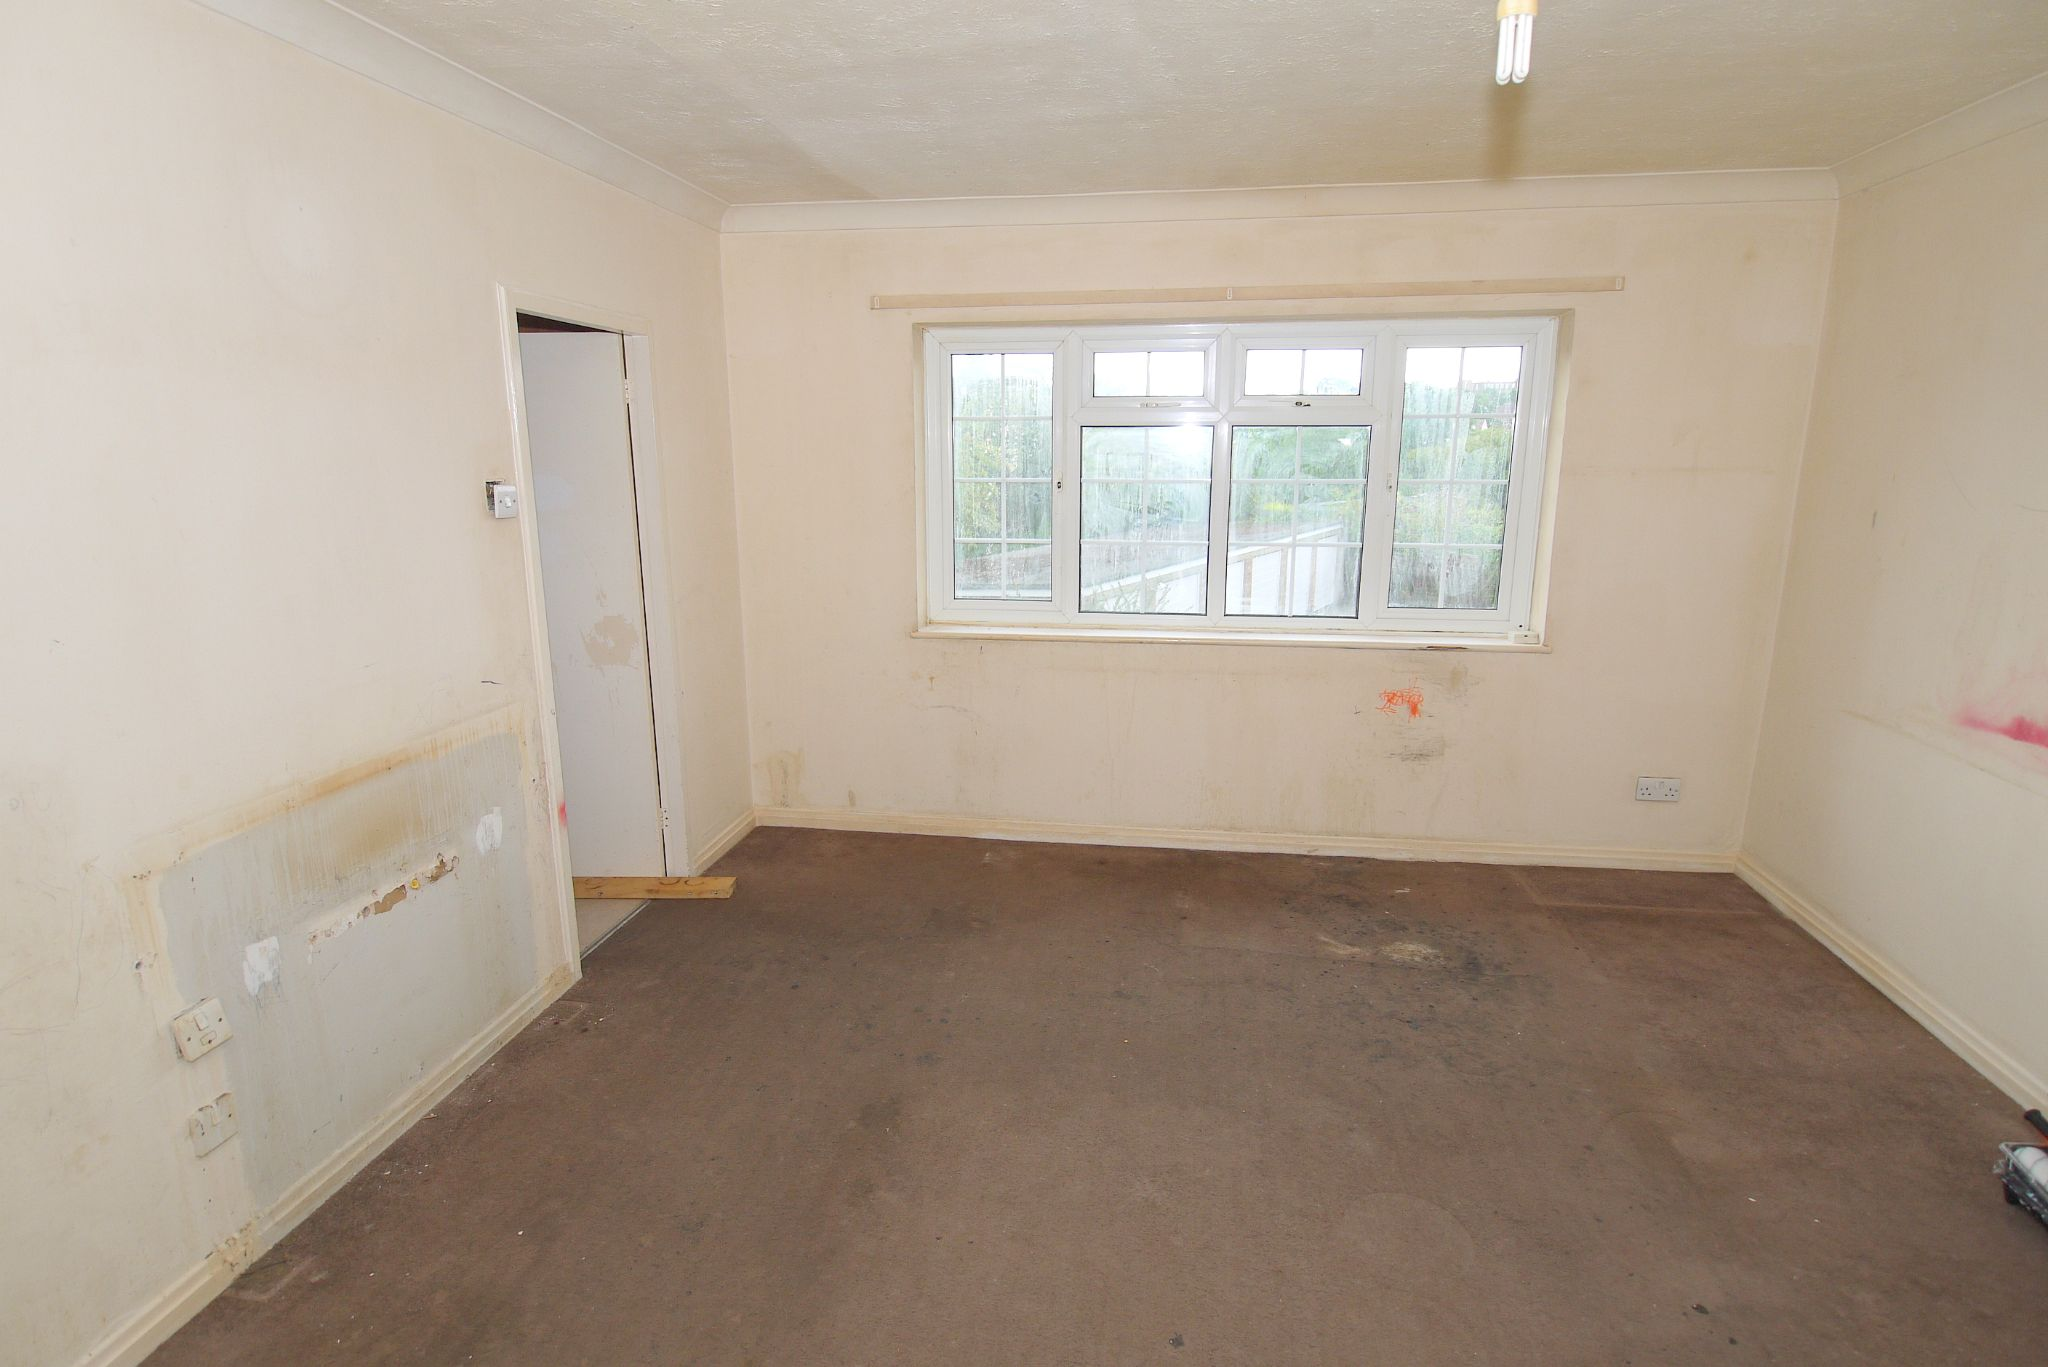 2 bedroom maisonette flat/apartment Sold in Sevenoaks - Photograph 3